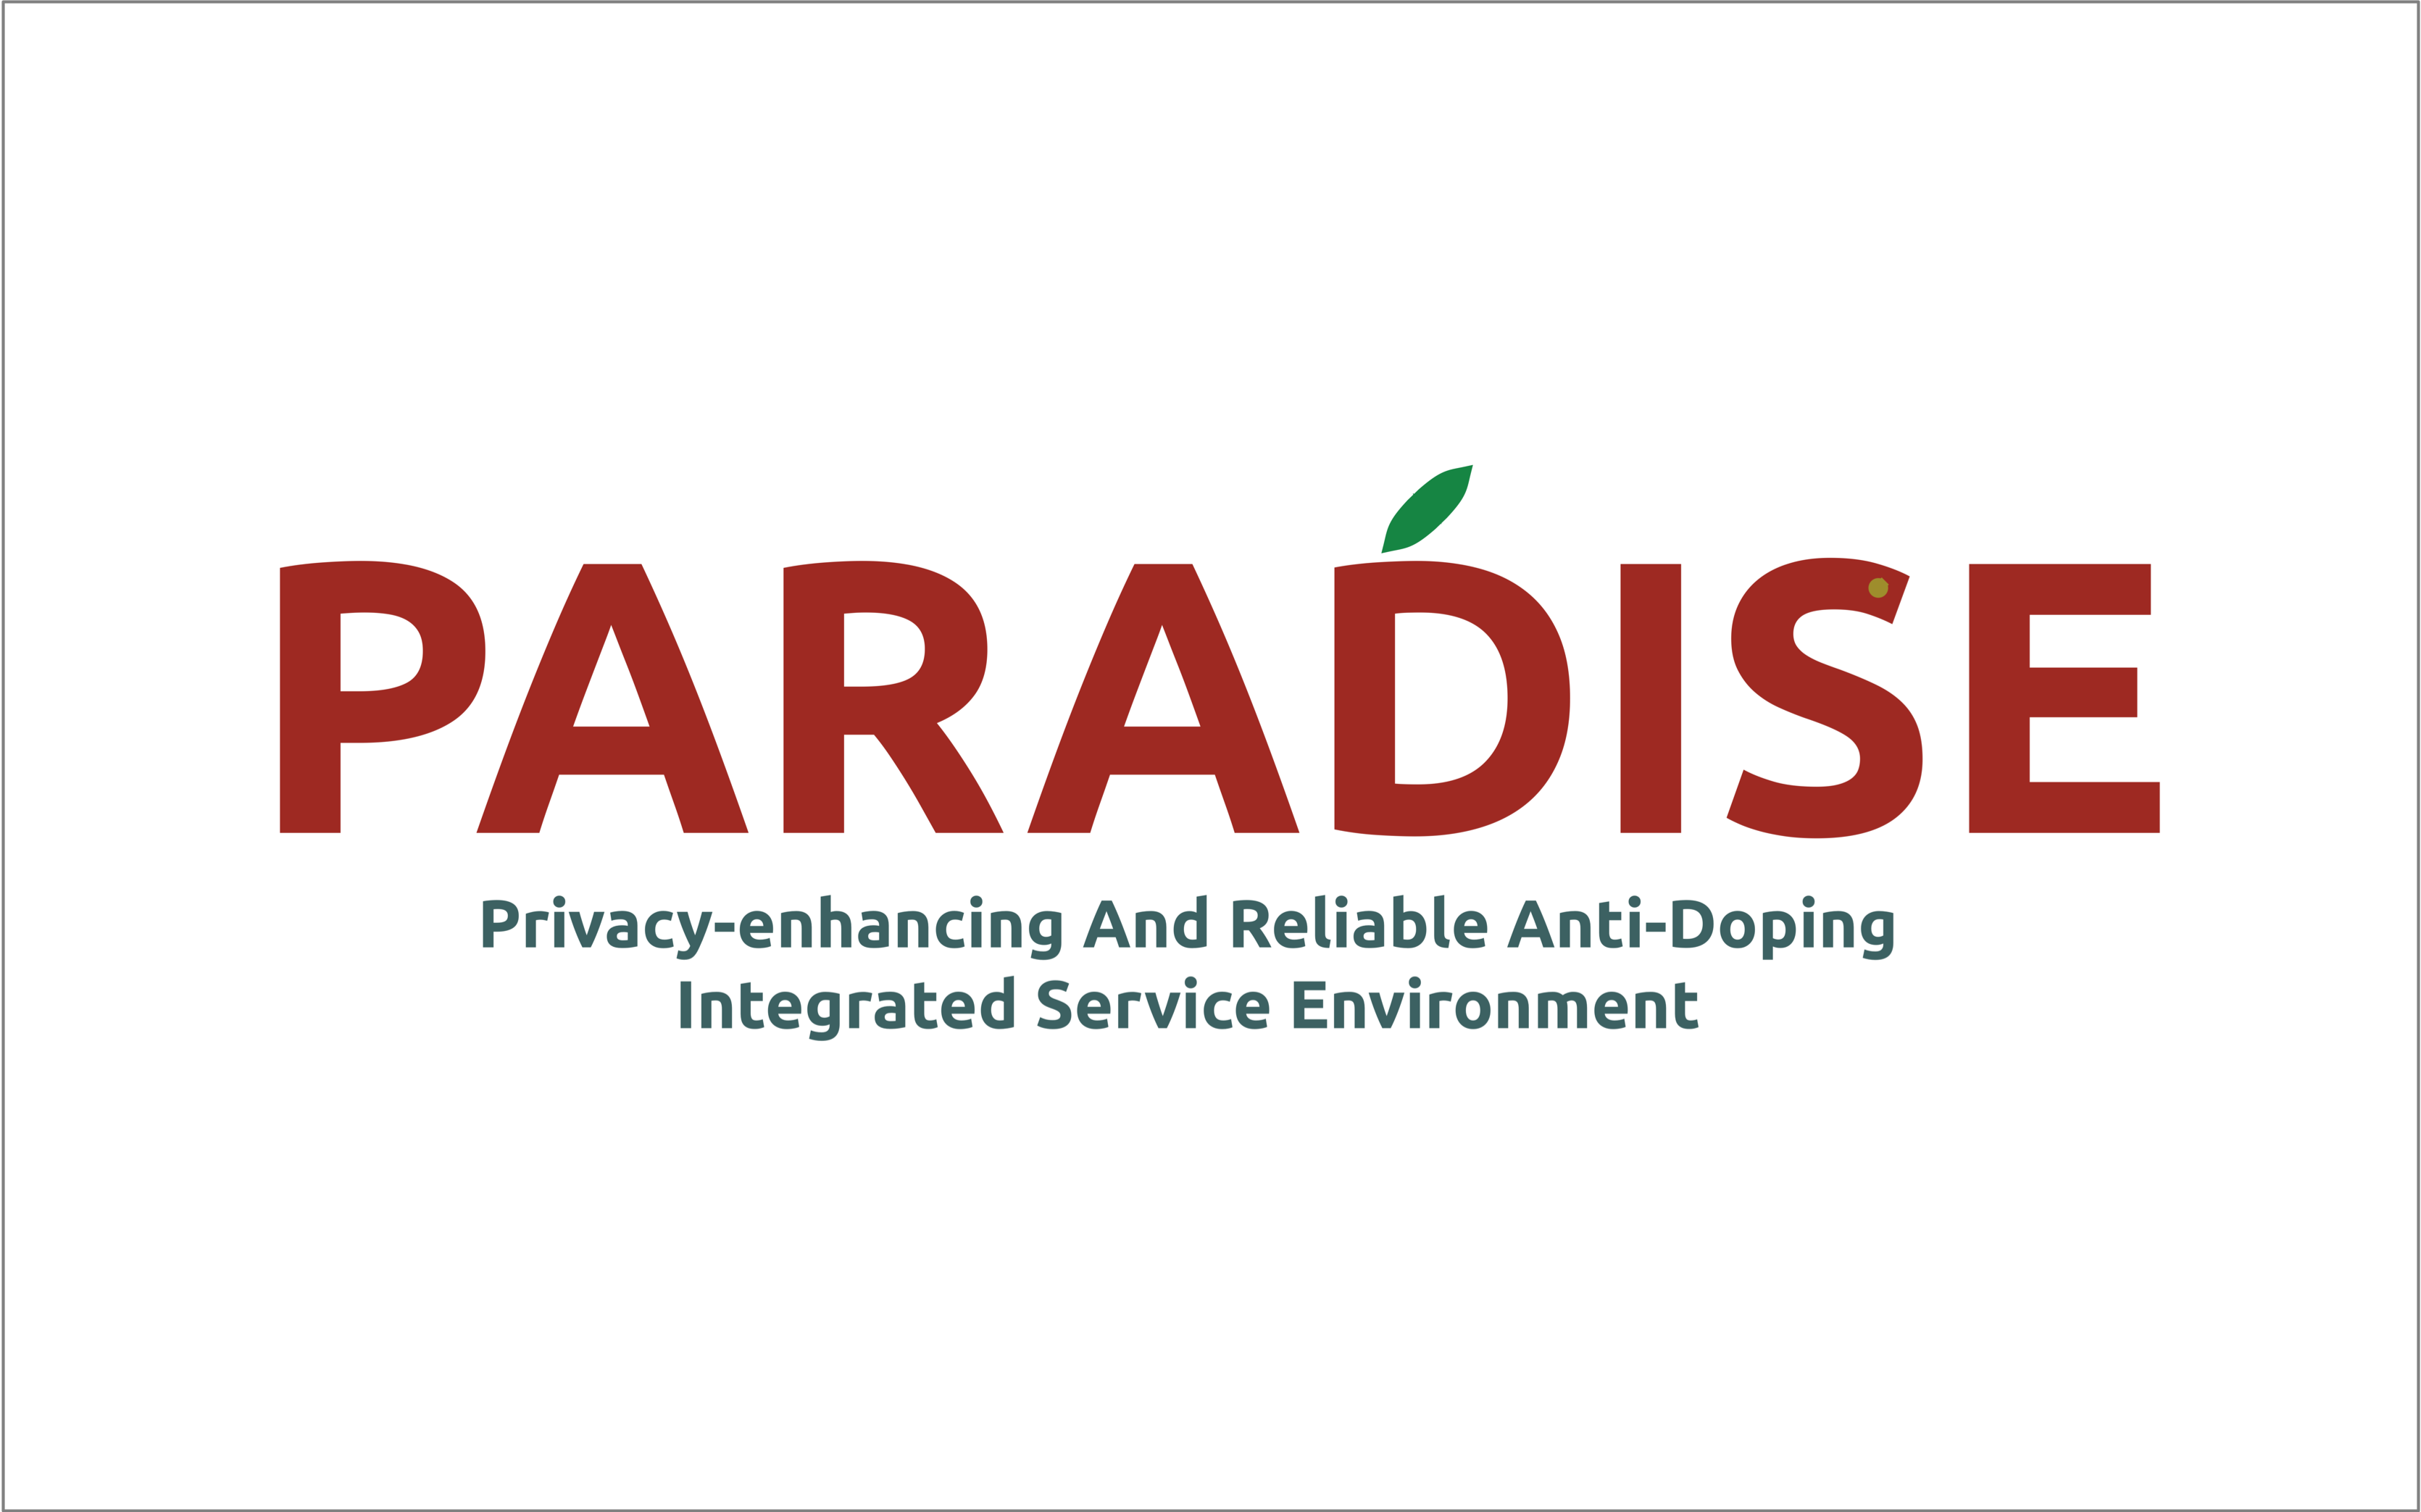 PARADISE Project (2016-2018)